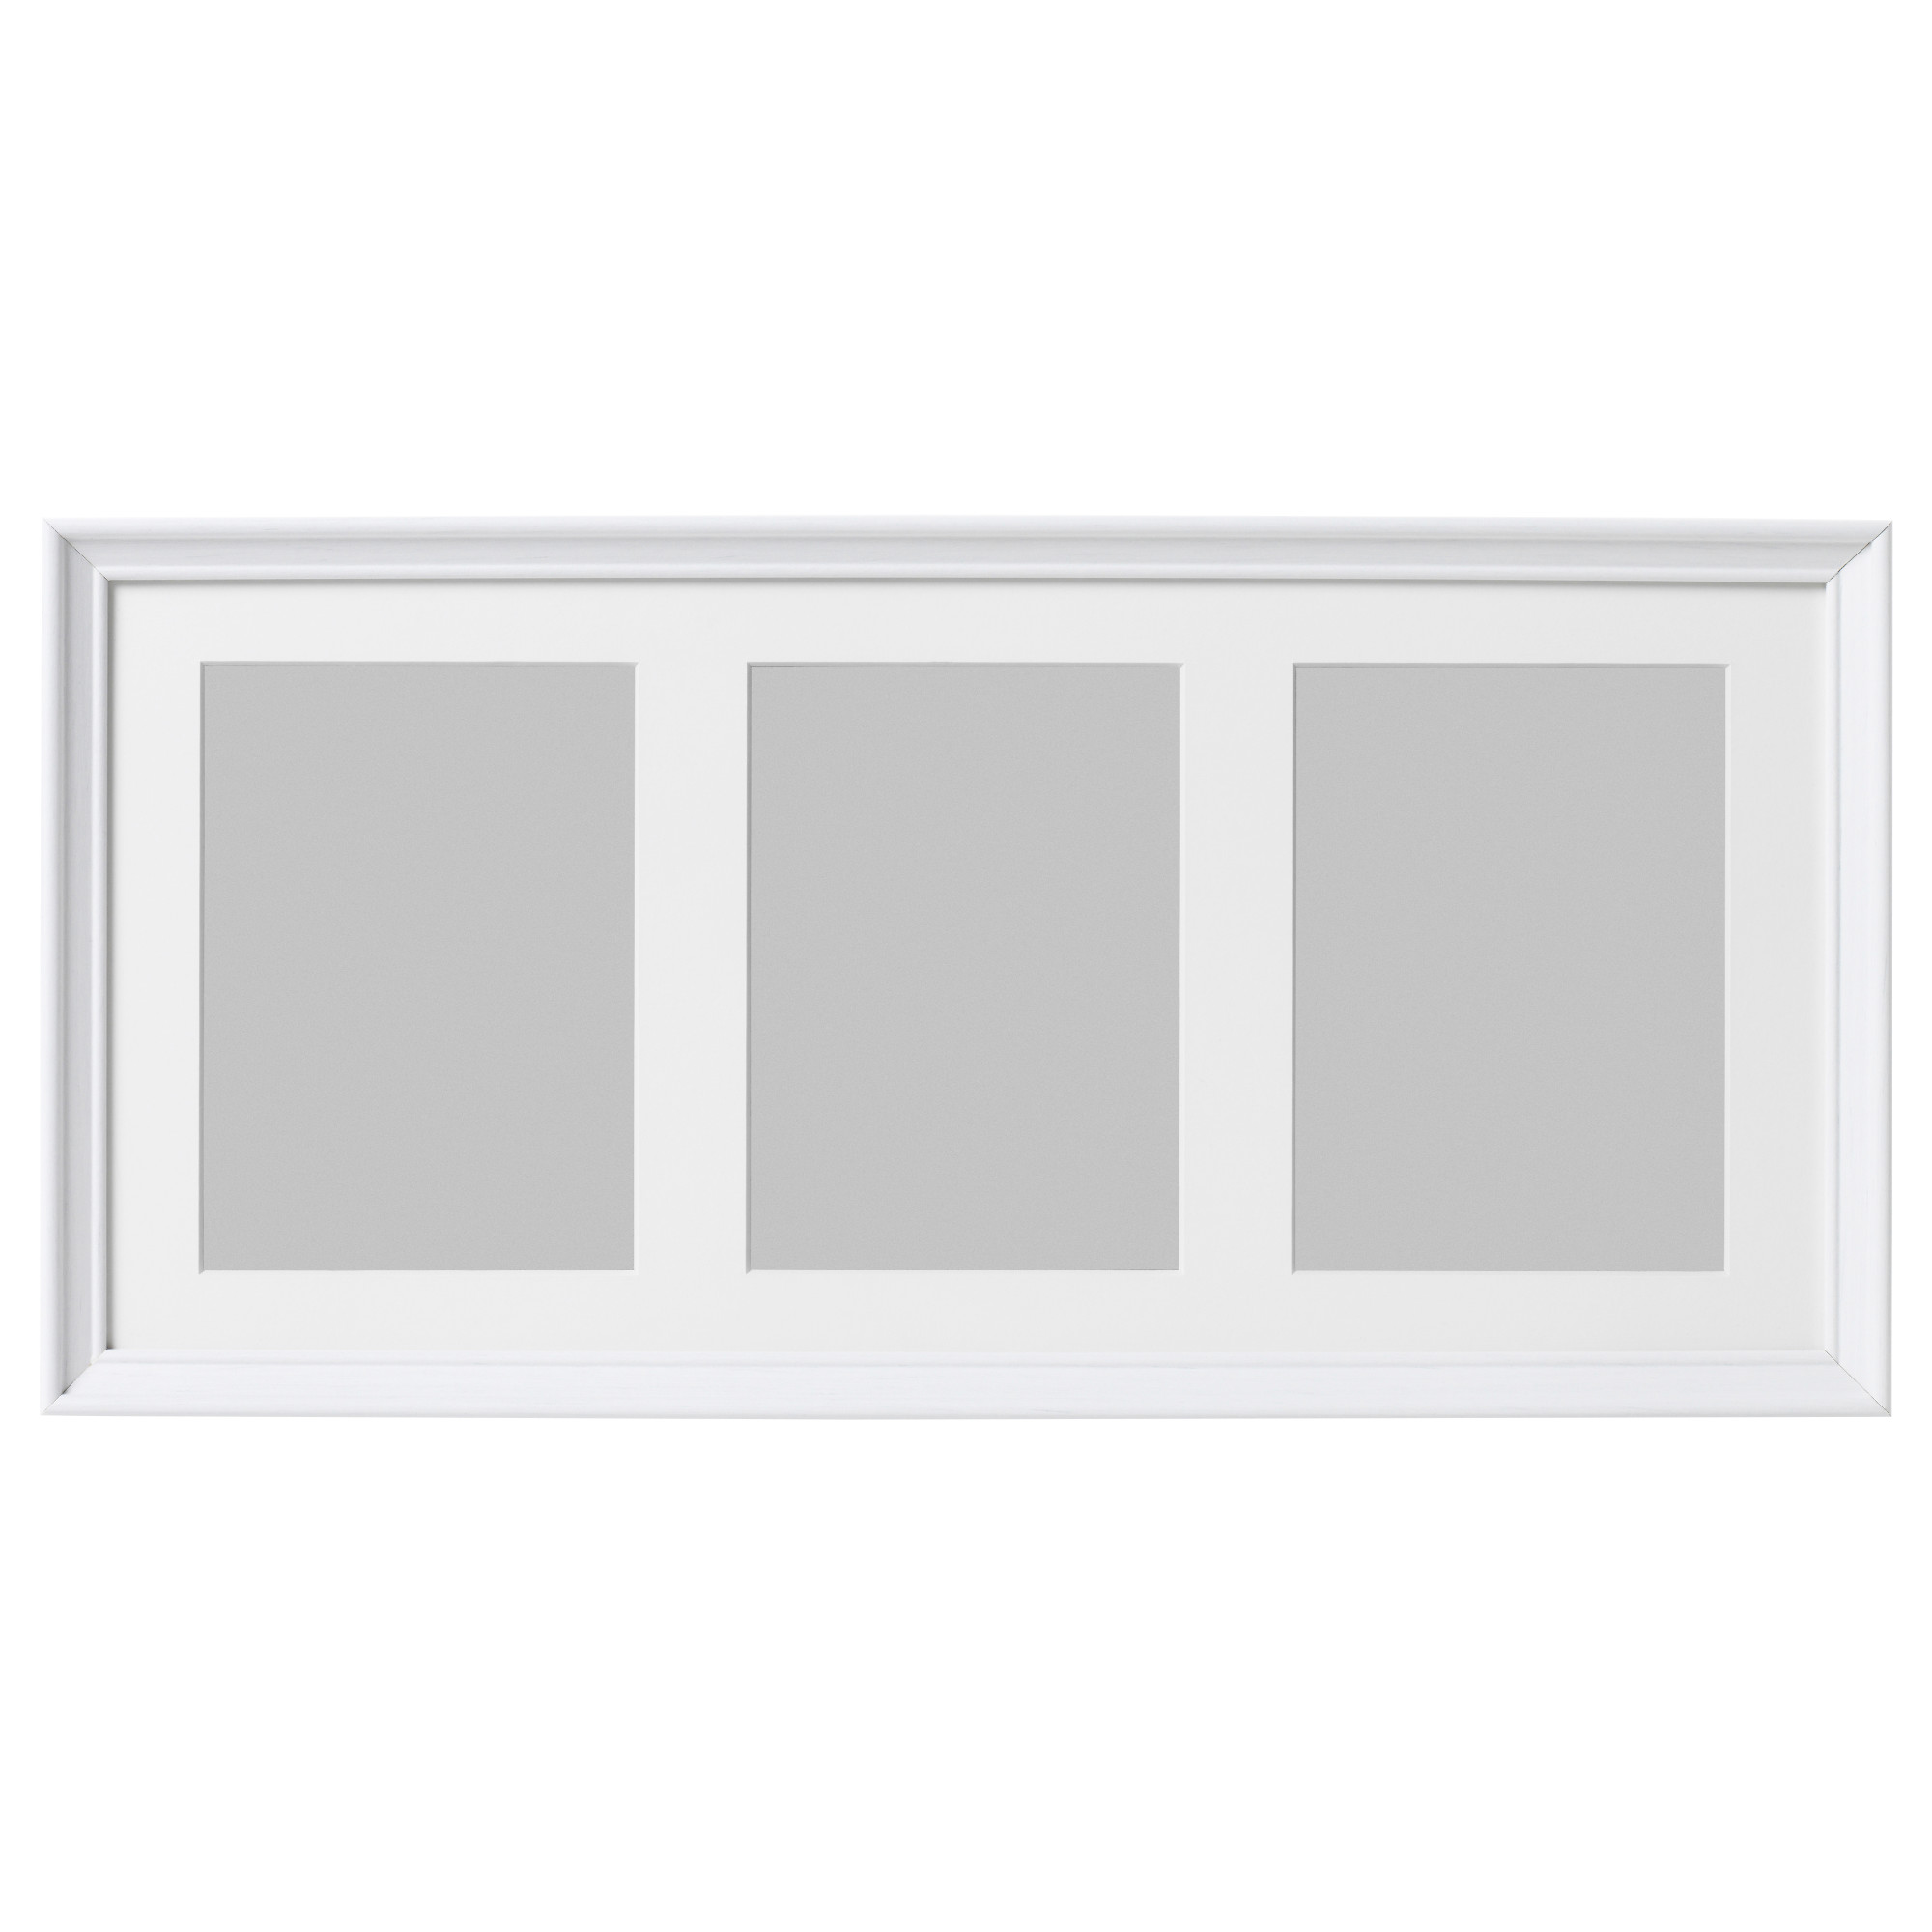 Picture frames ikea knoppng frame for 3 pictures jeuxipadfo Choice Image